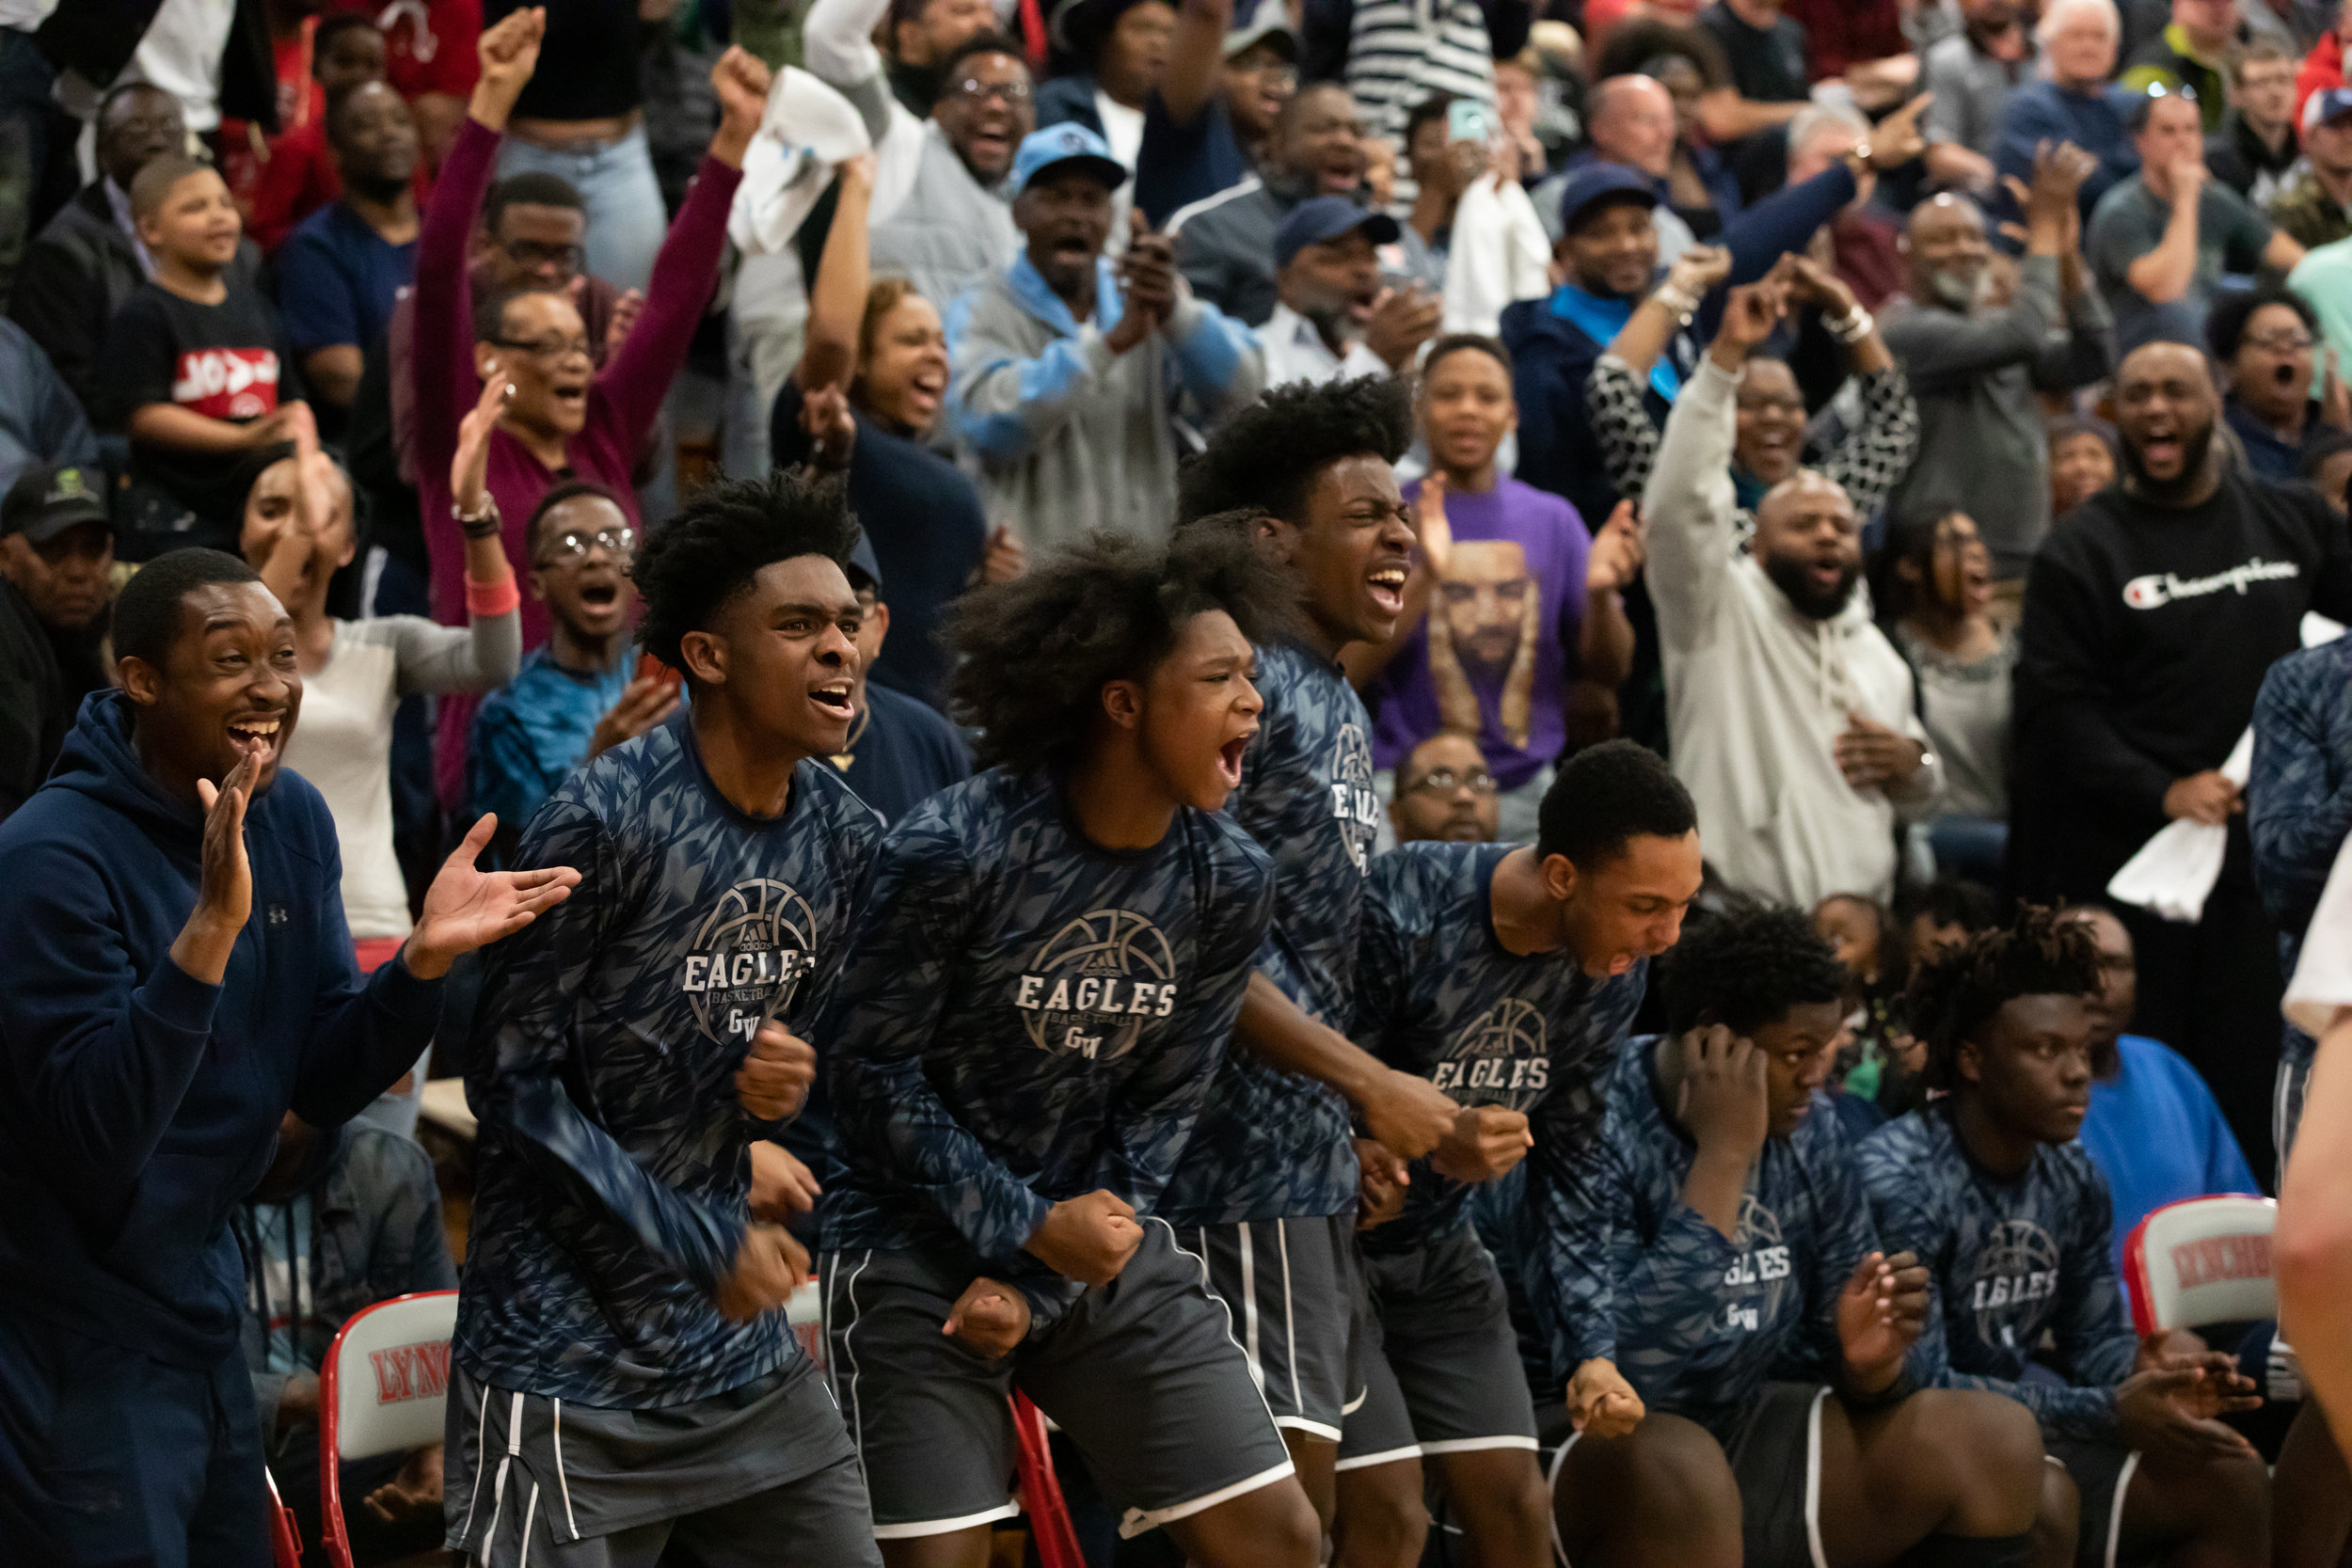 George Washington High School basketball team cheers from the sidelines during the state semi-final game between Jefferson Forest High School and George Washington High School on March 5, 2019 at University of Lynchburg's Turner Gymnasium.